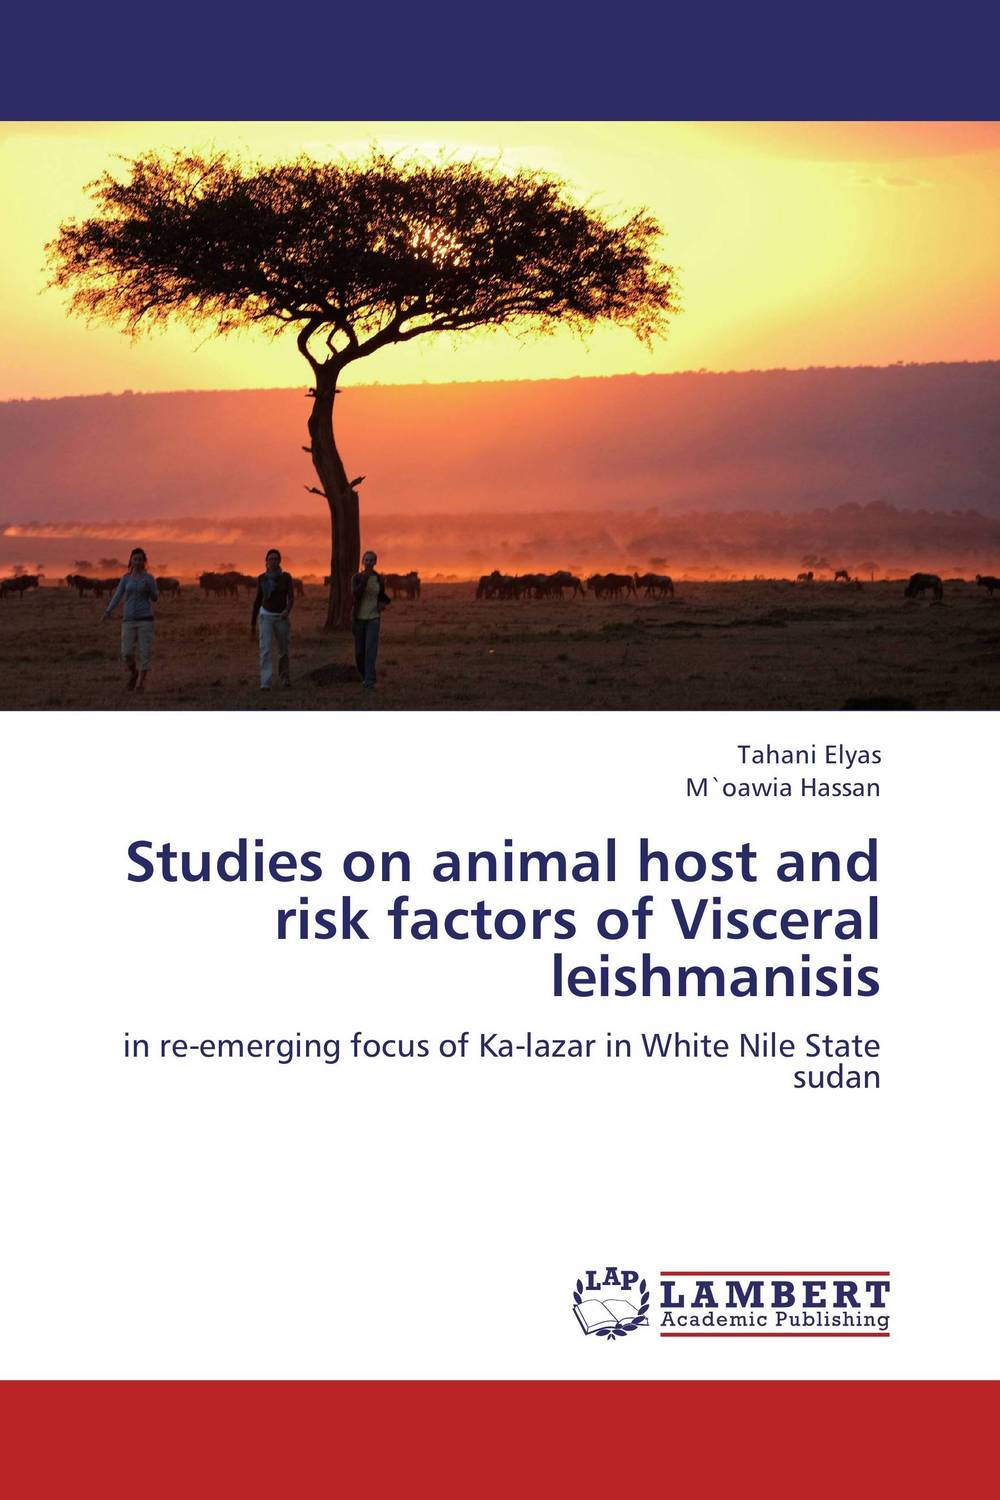 Studies on animal host and risk factors of Visceral leishmanisis